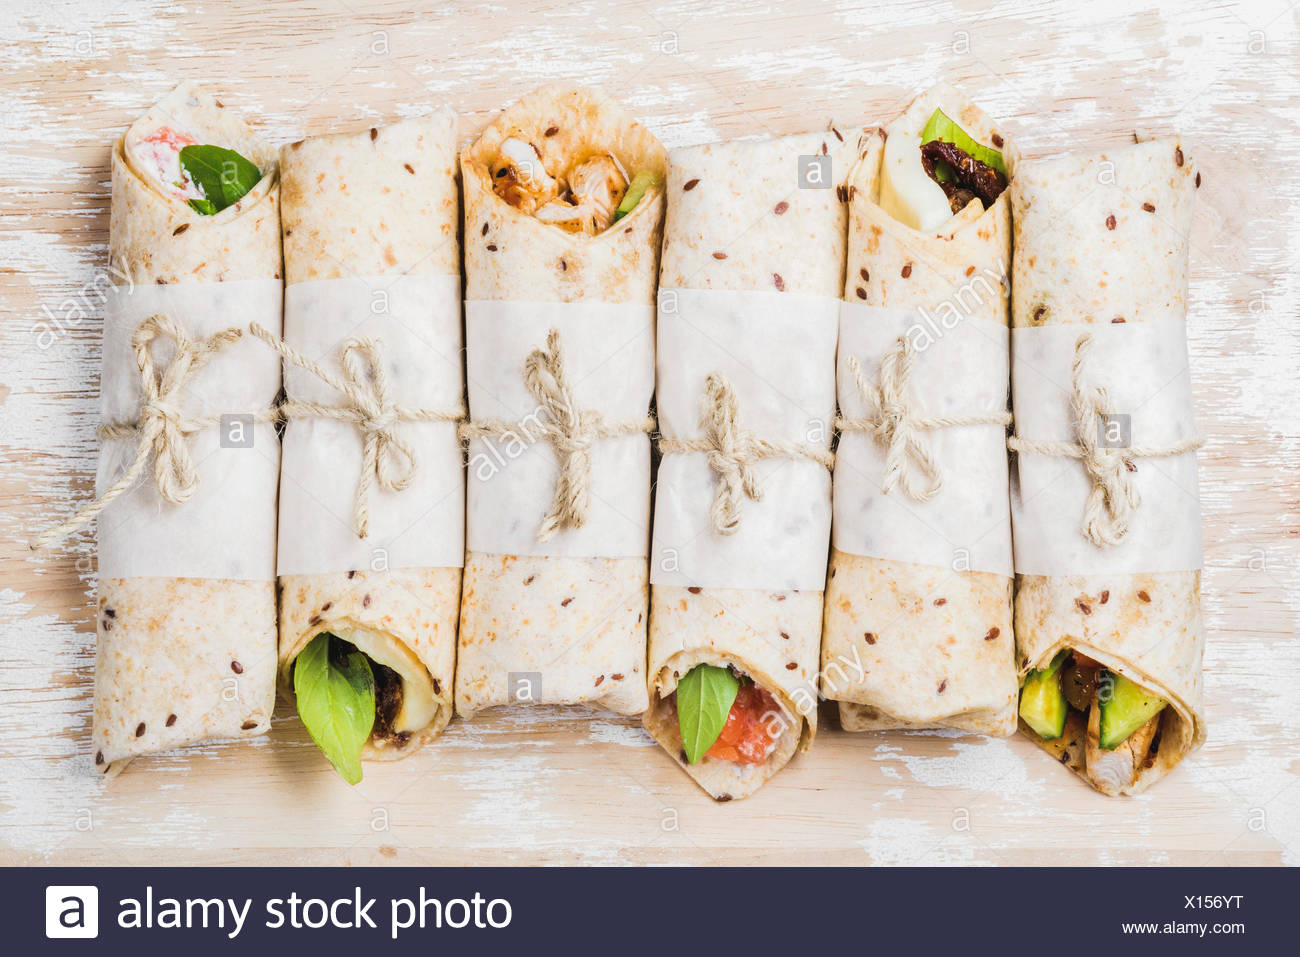 Tortilla wraps with various fillings on shabby white painted wooden background, top view, horizontal composition. Healthy snack - Stock Image